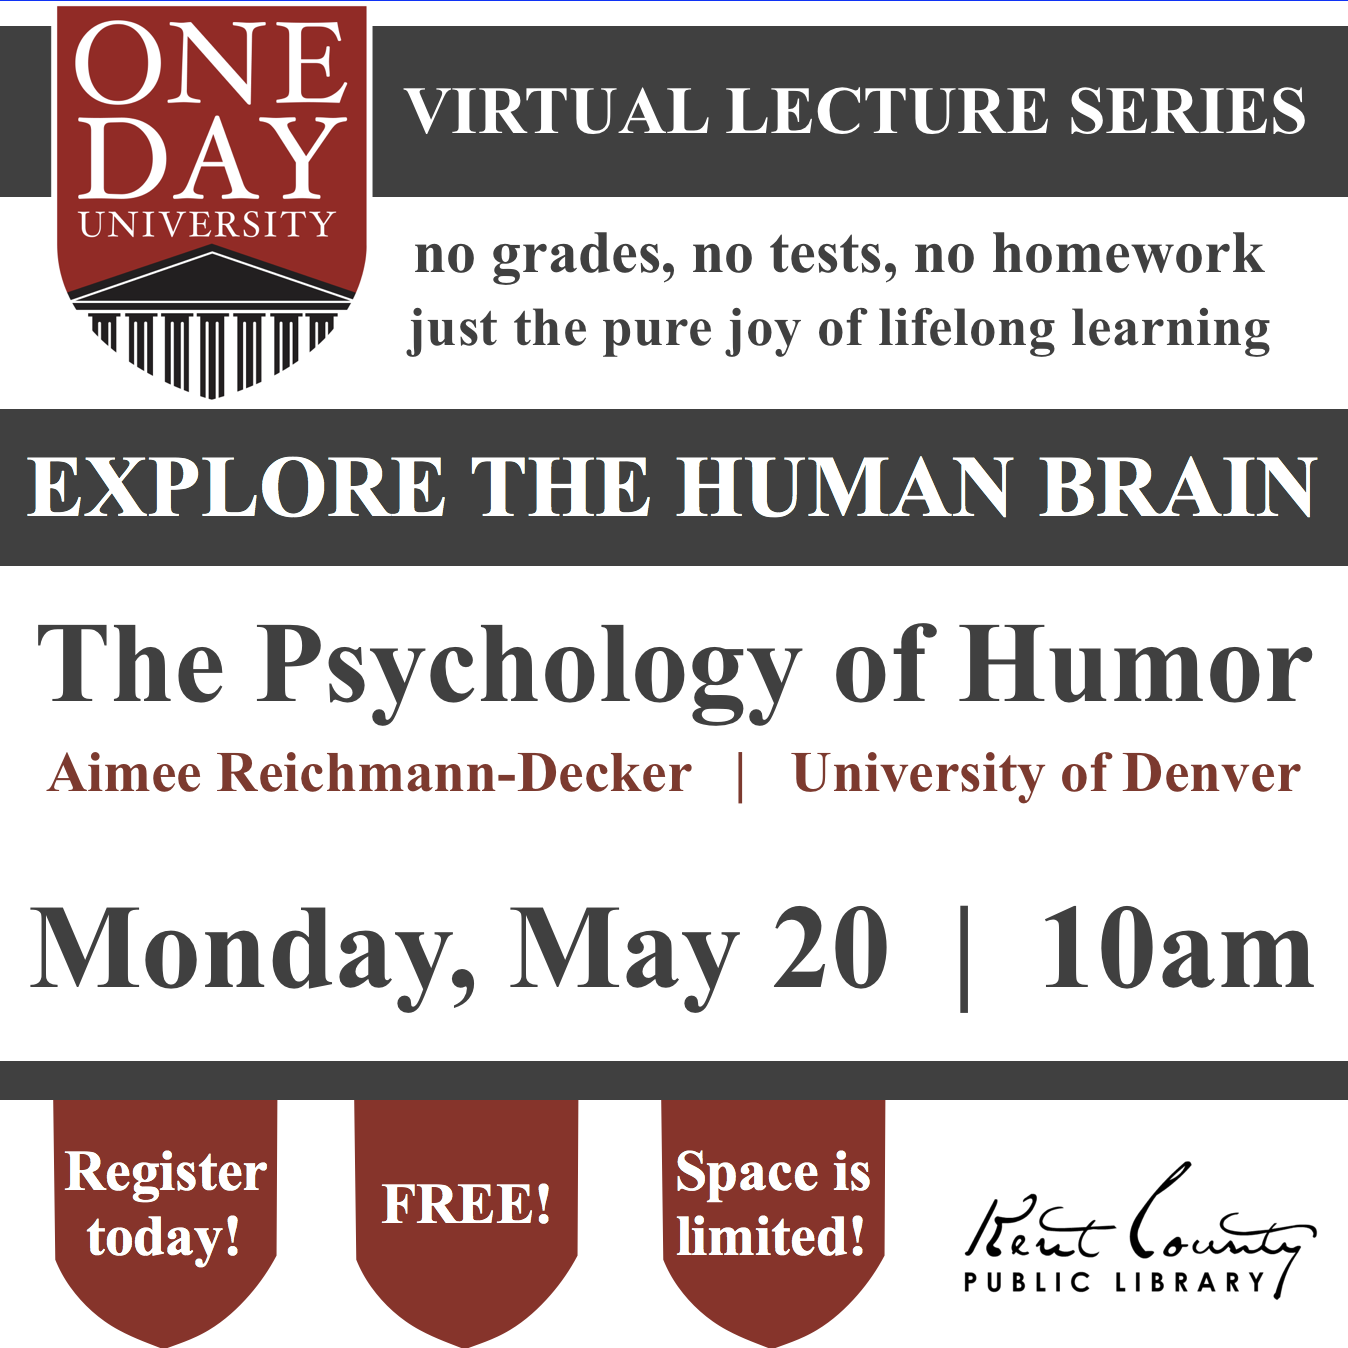 One Day University: The Psychology of Humor